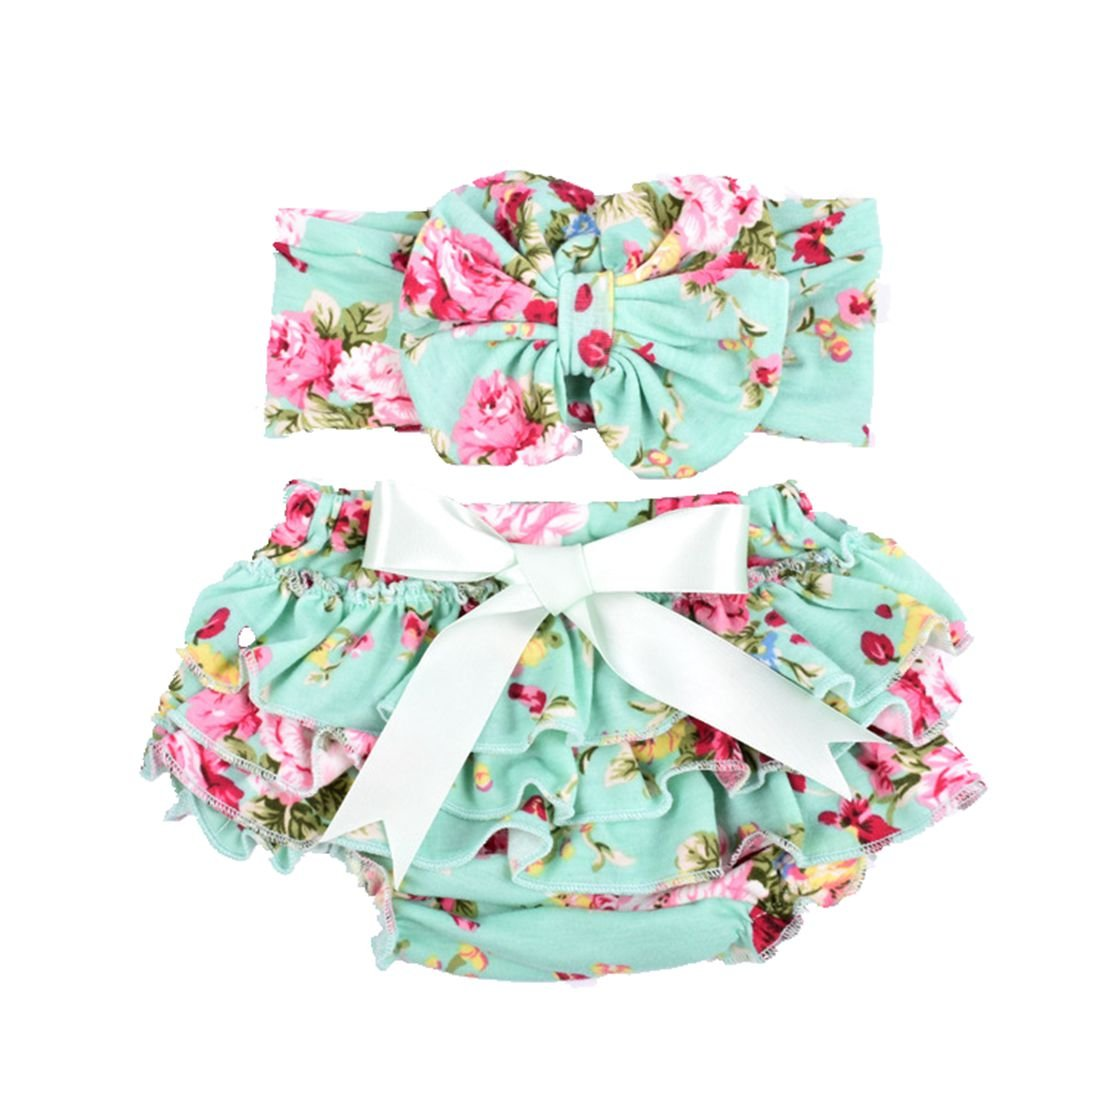 Baby Girl's Bloomer and Headband Set with Bowknot Soft Lace Ruffle Diaper Cover Yzjcafriz